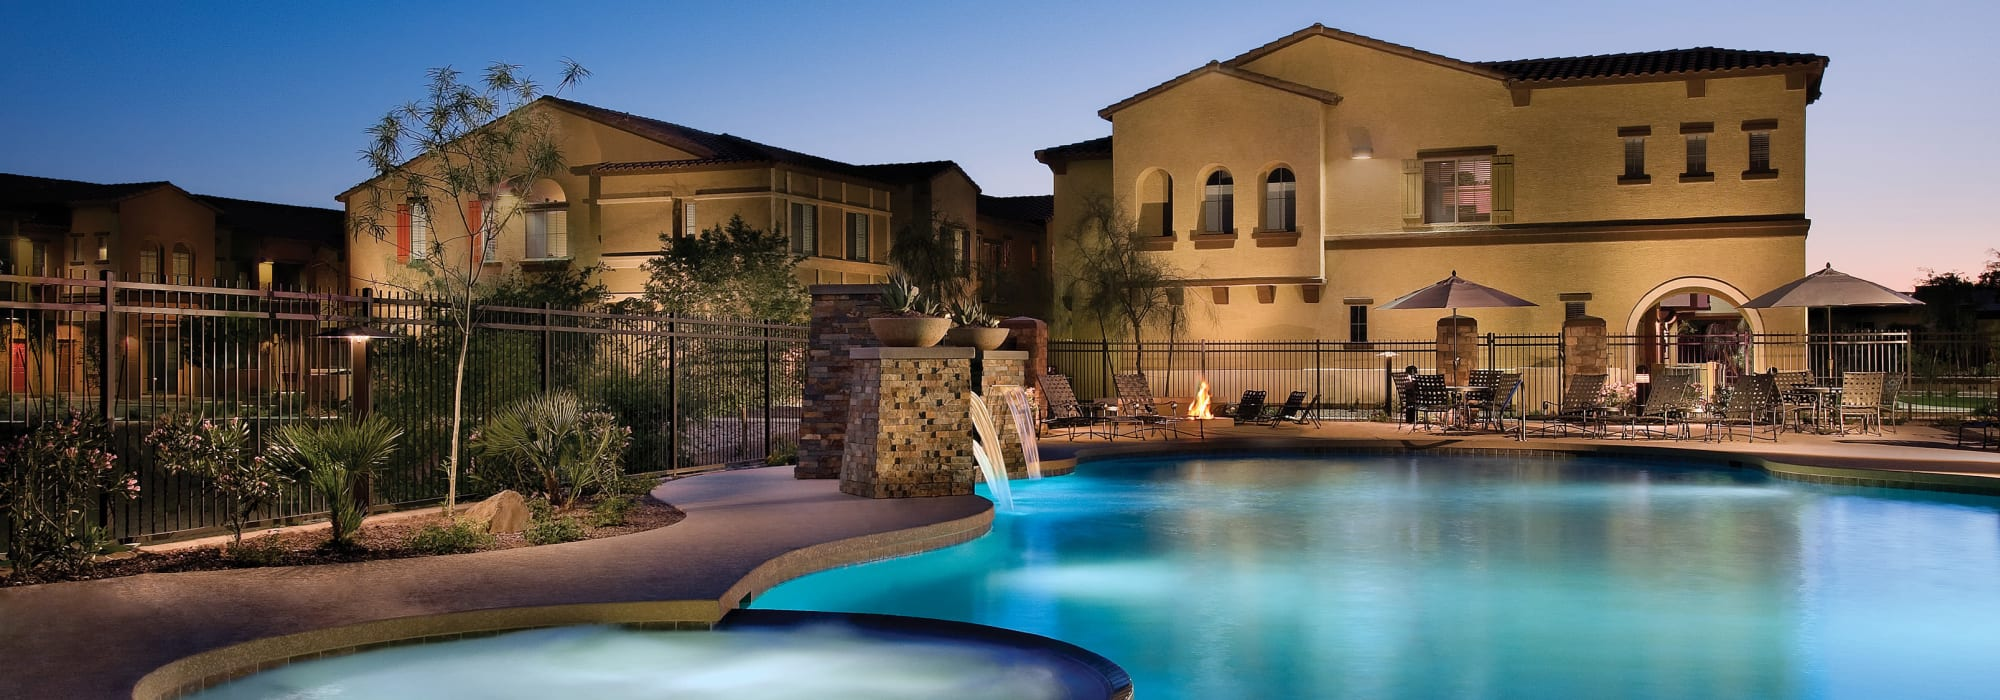 Resort style swimming pool and hot tub at Ravenwood Heights in Tempe, Arizona